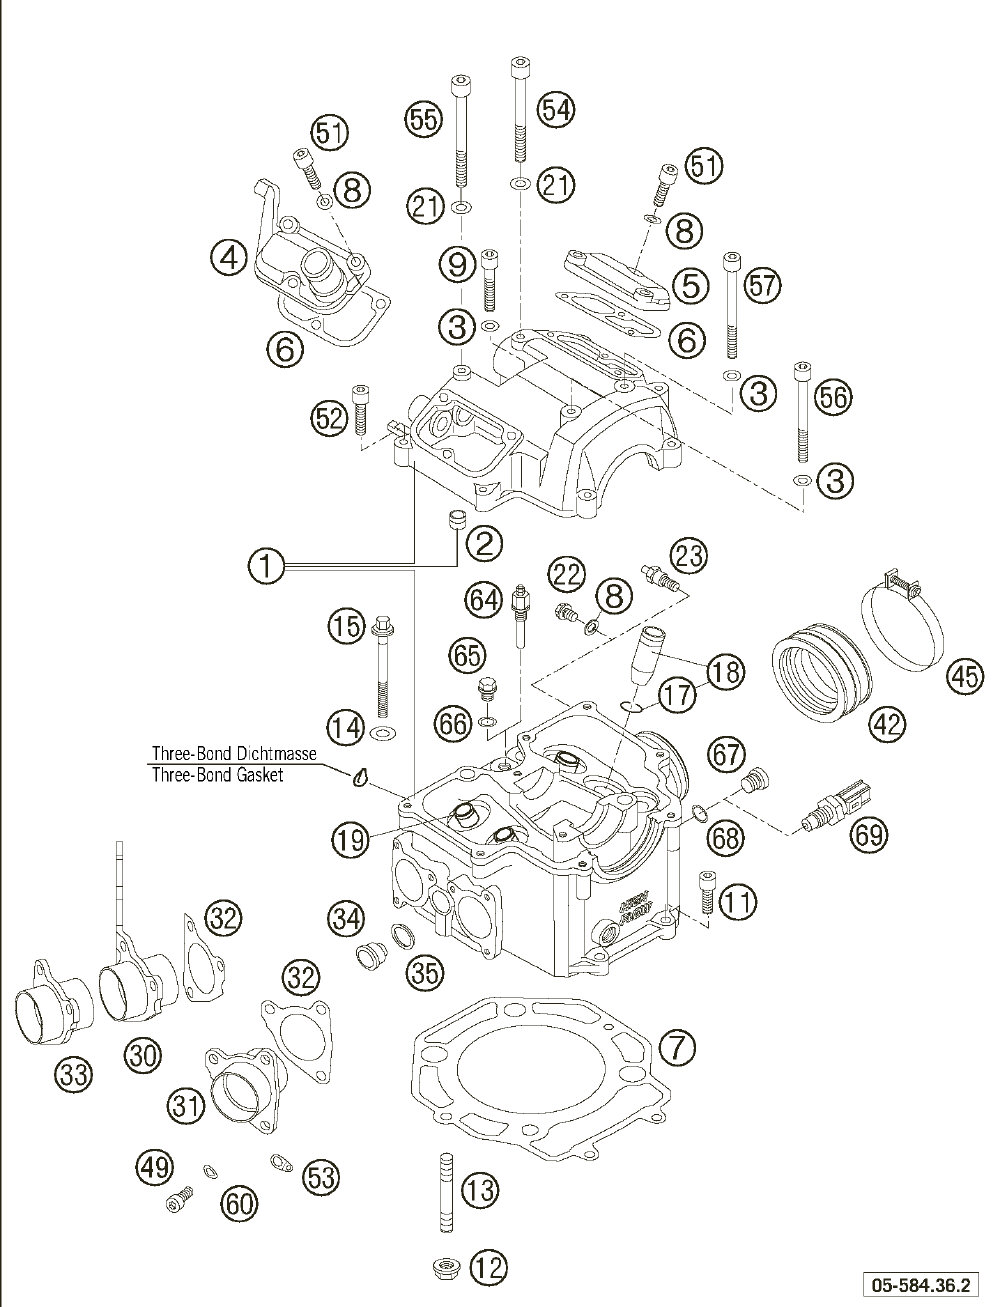 2000 Buick Lesabre Engine Mount Diagram Http Wiringdiagramsolutions